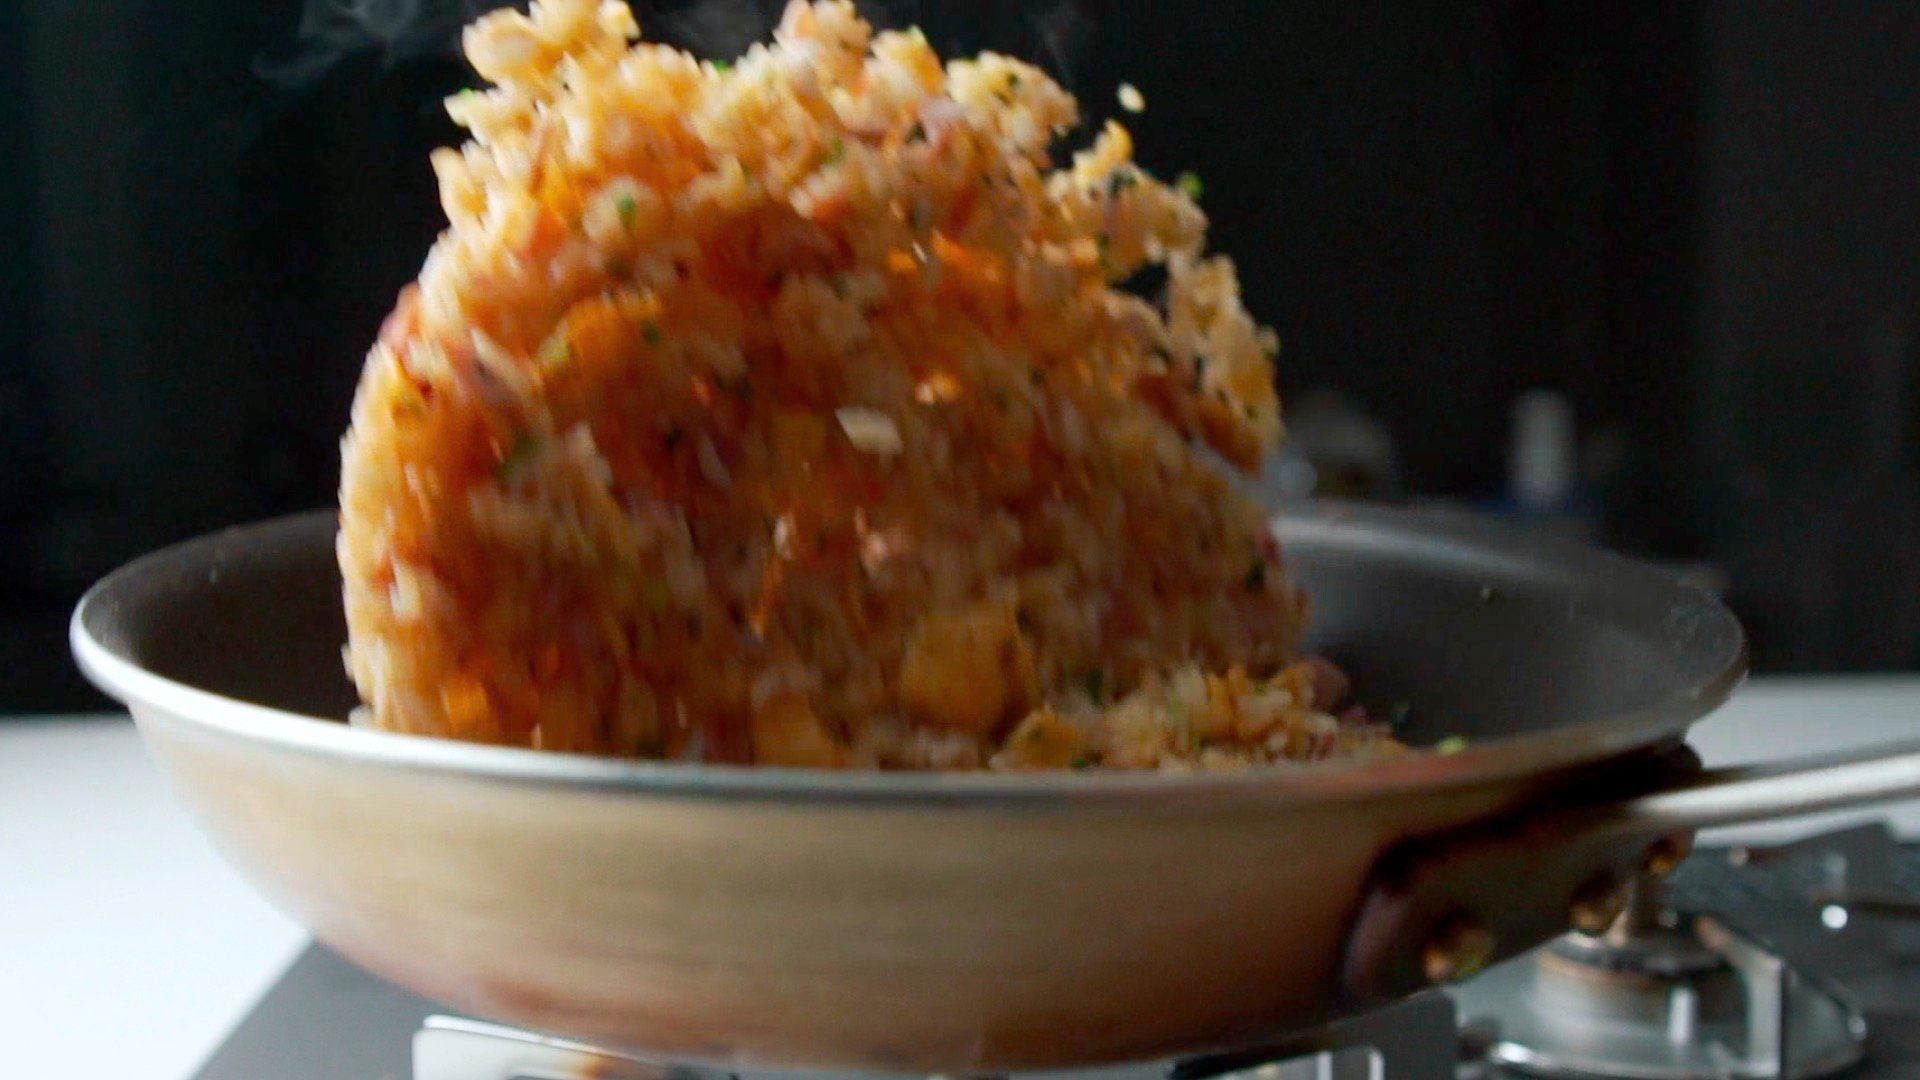 Tossing fried rice in a frying pan.